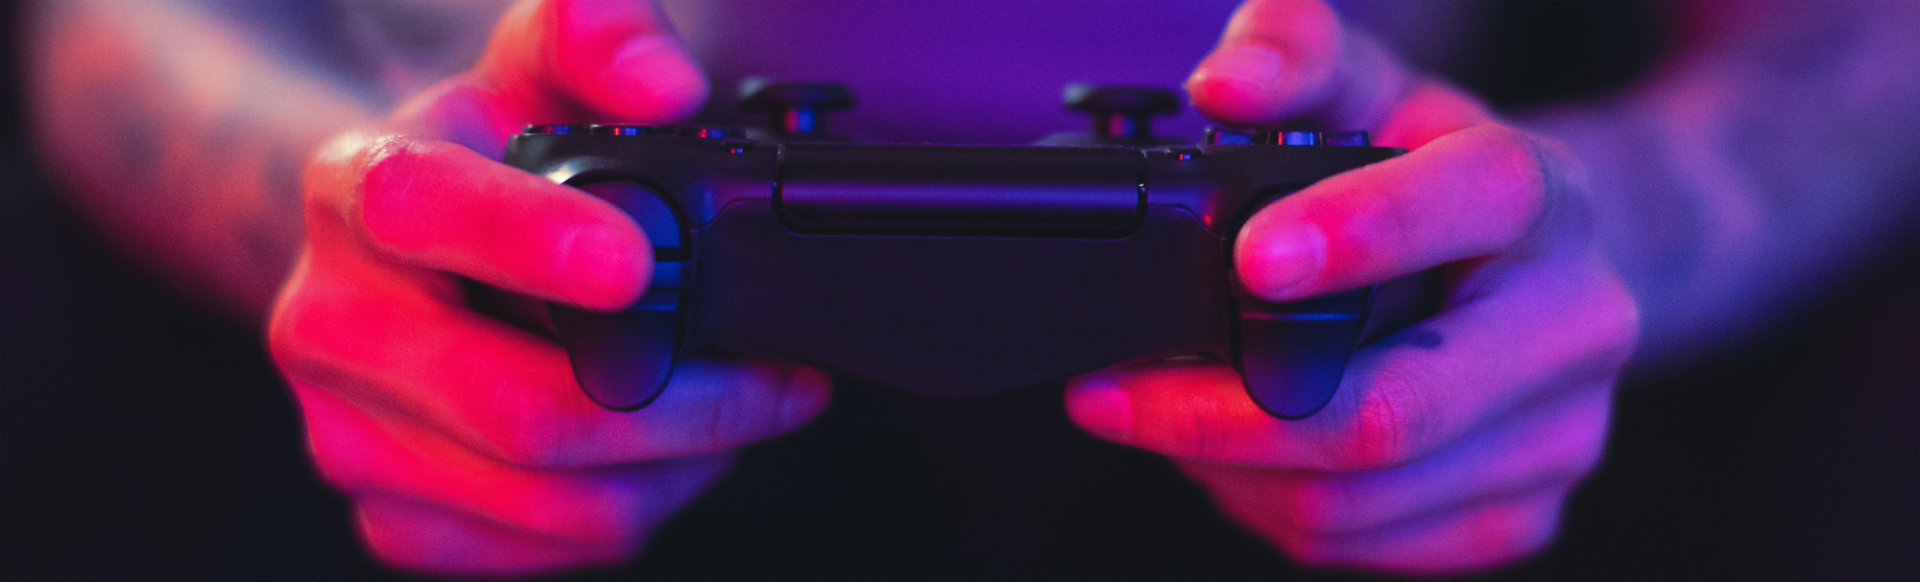 hands with a video game controller